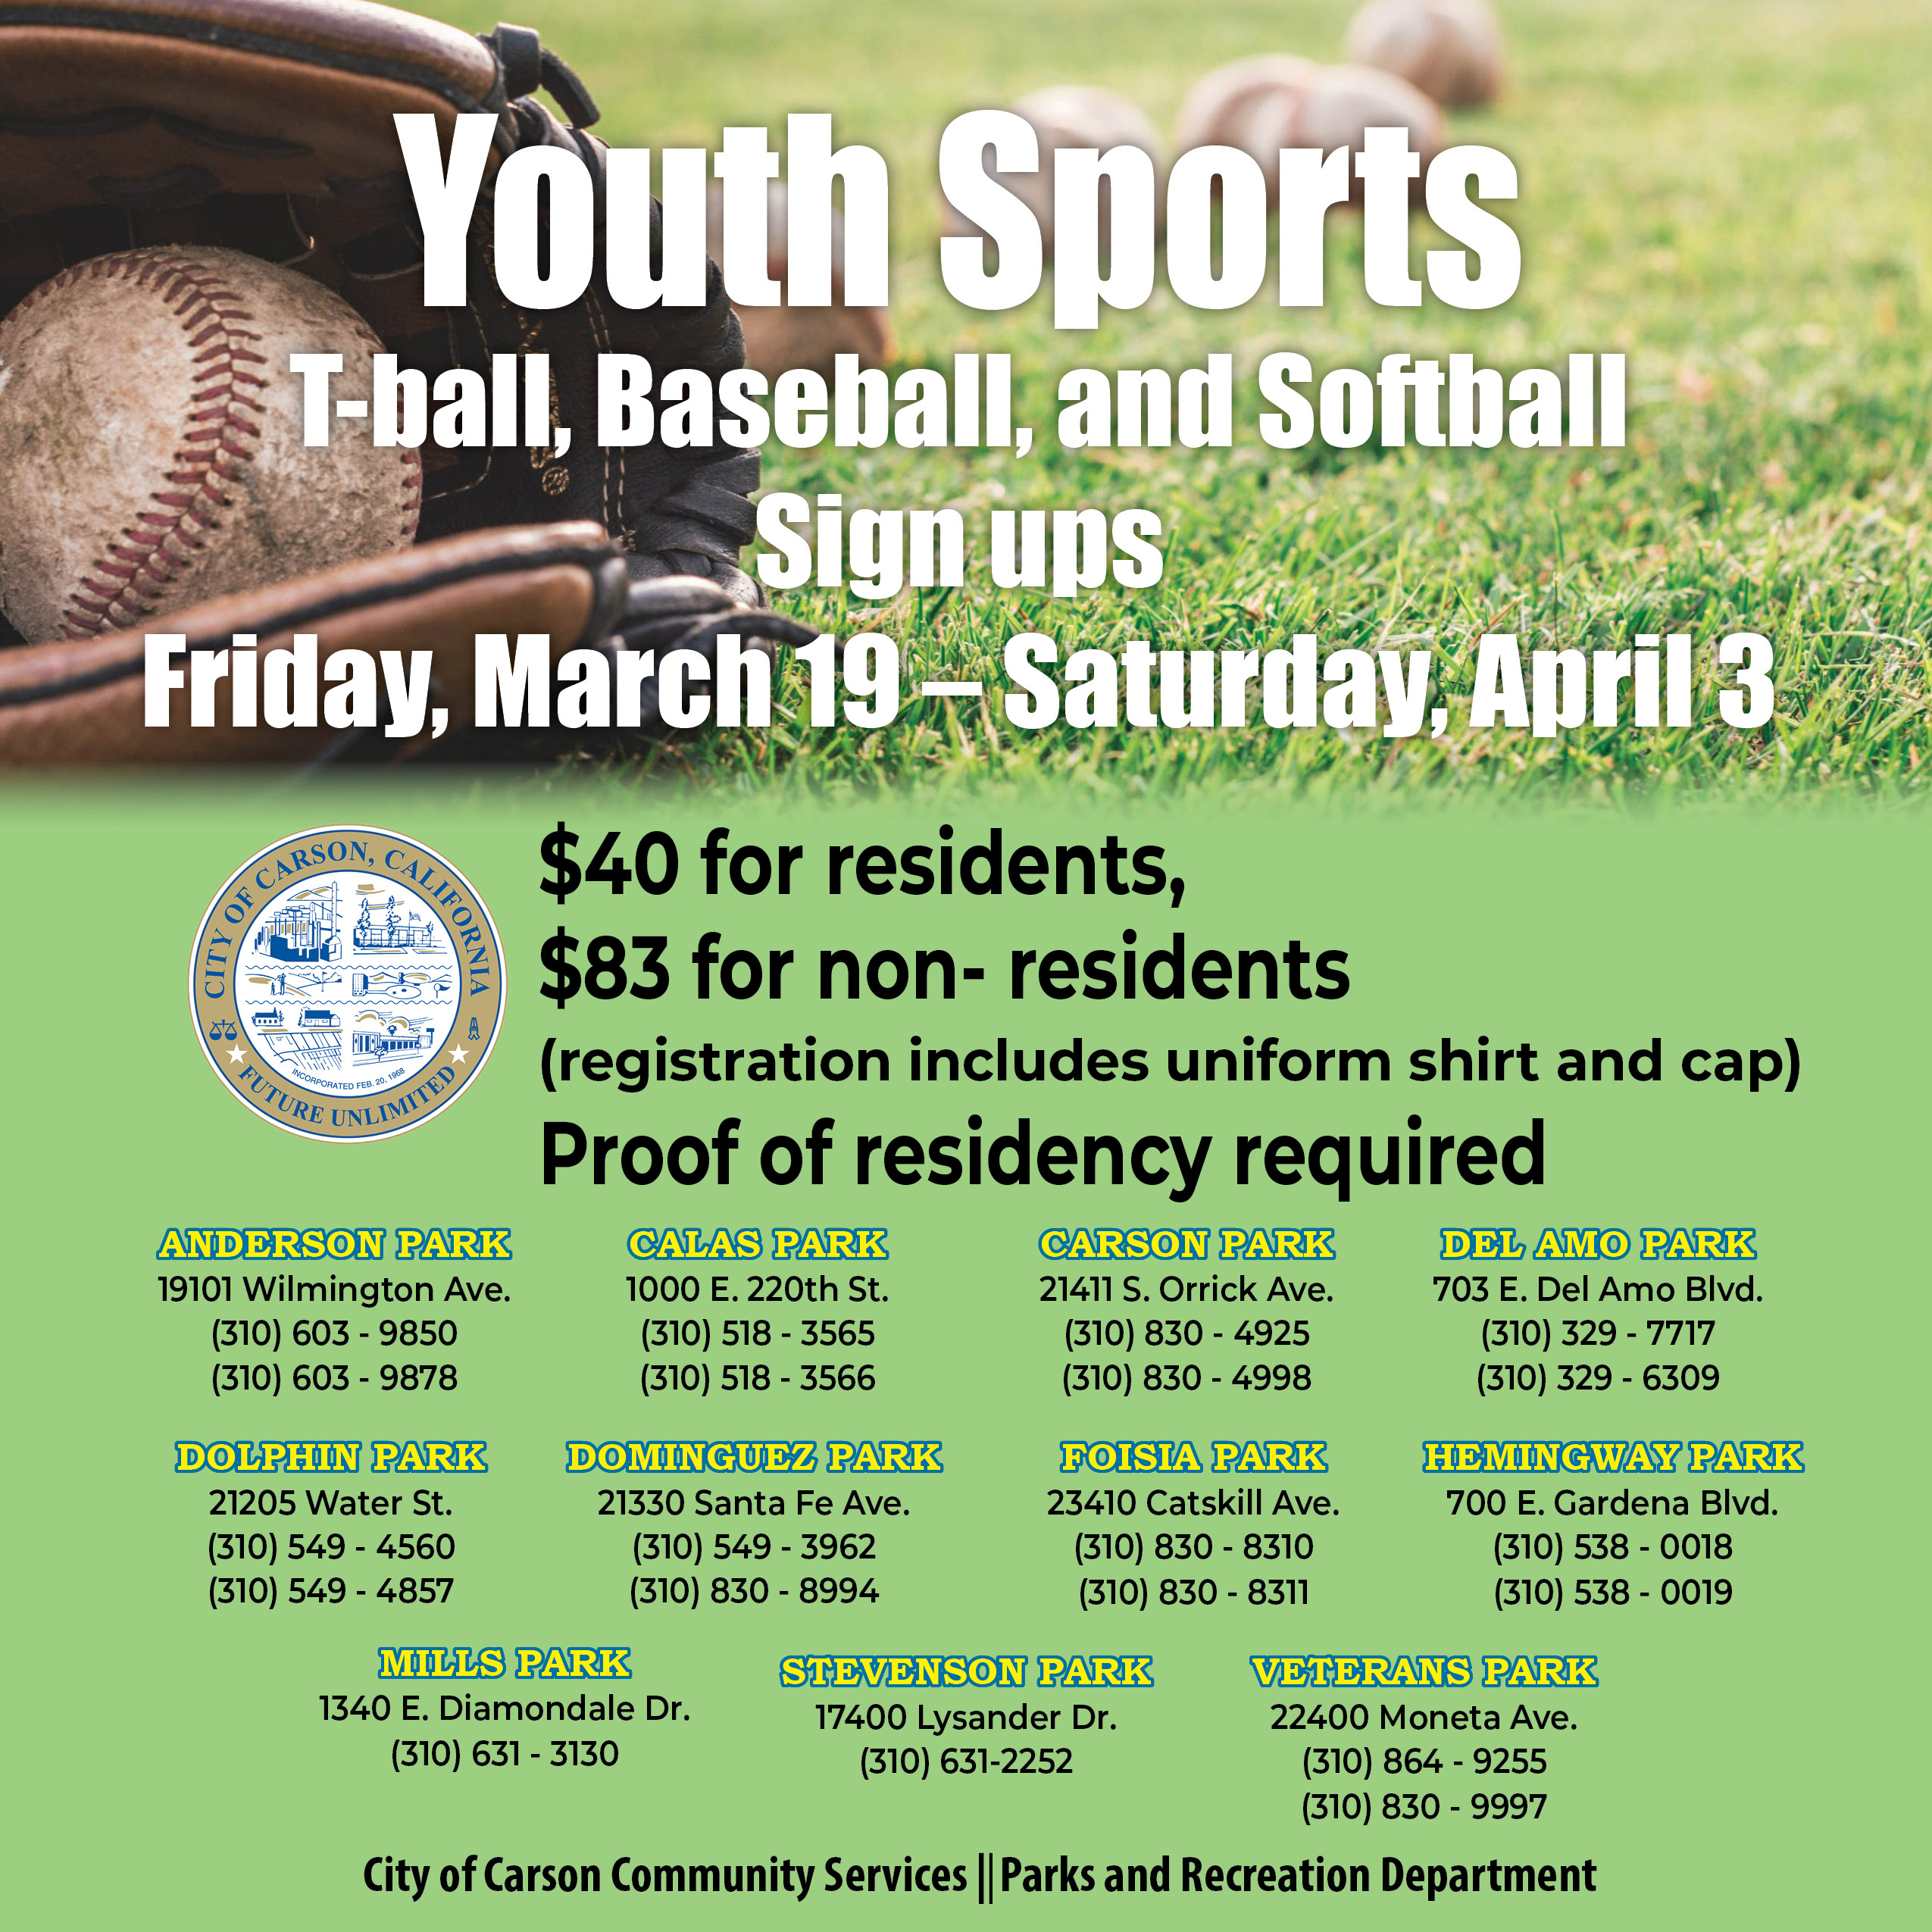 Youth Sports Sign up, click to view in original size